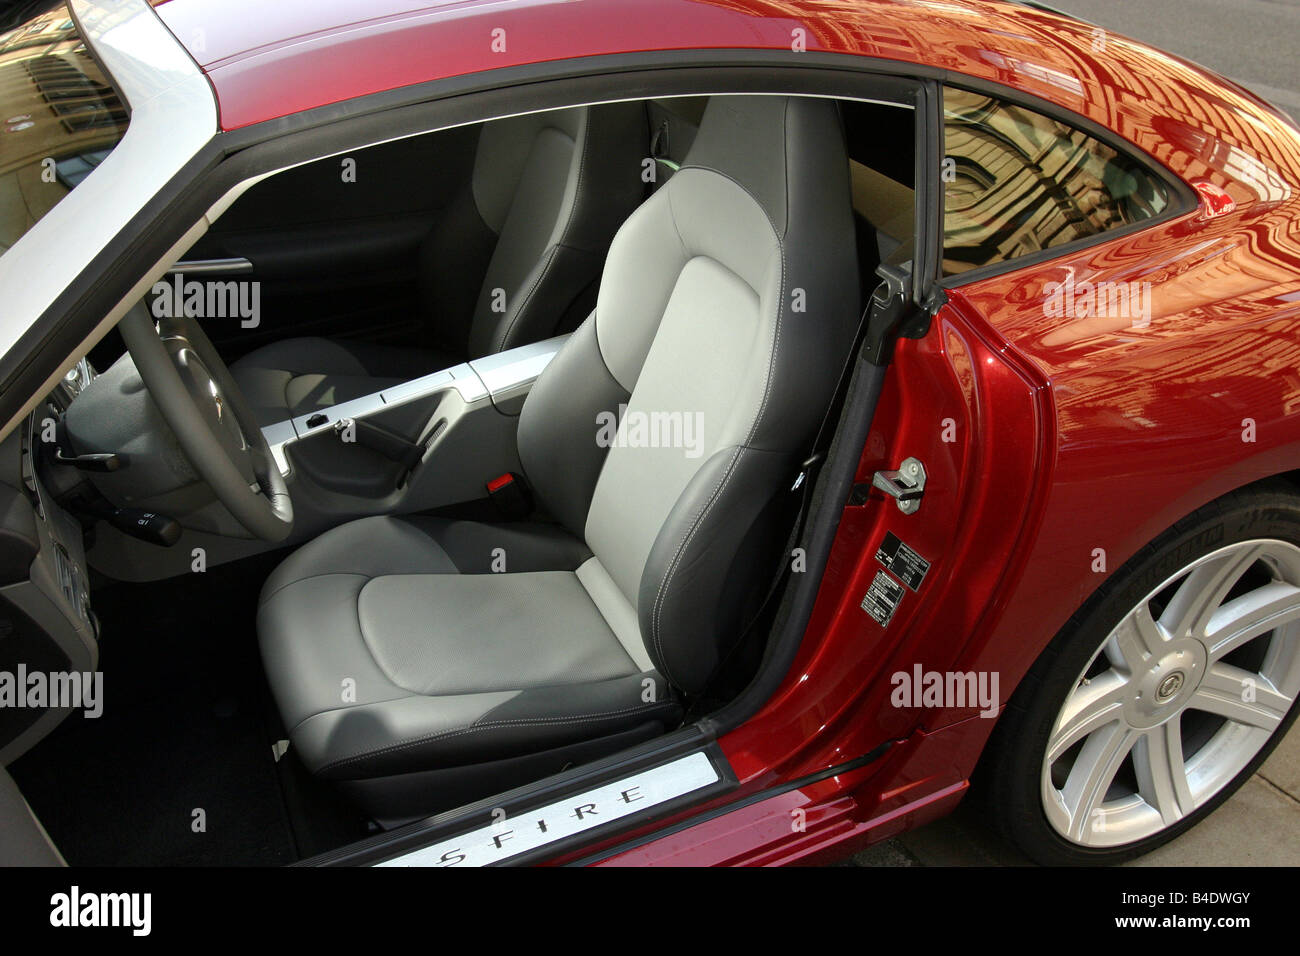 chrysler crossfire custom interior. car chrysler crossfire red roadster model year 2003 coupe custom interior